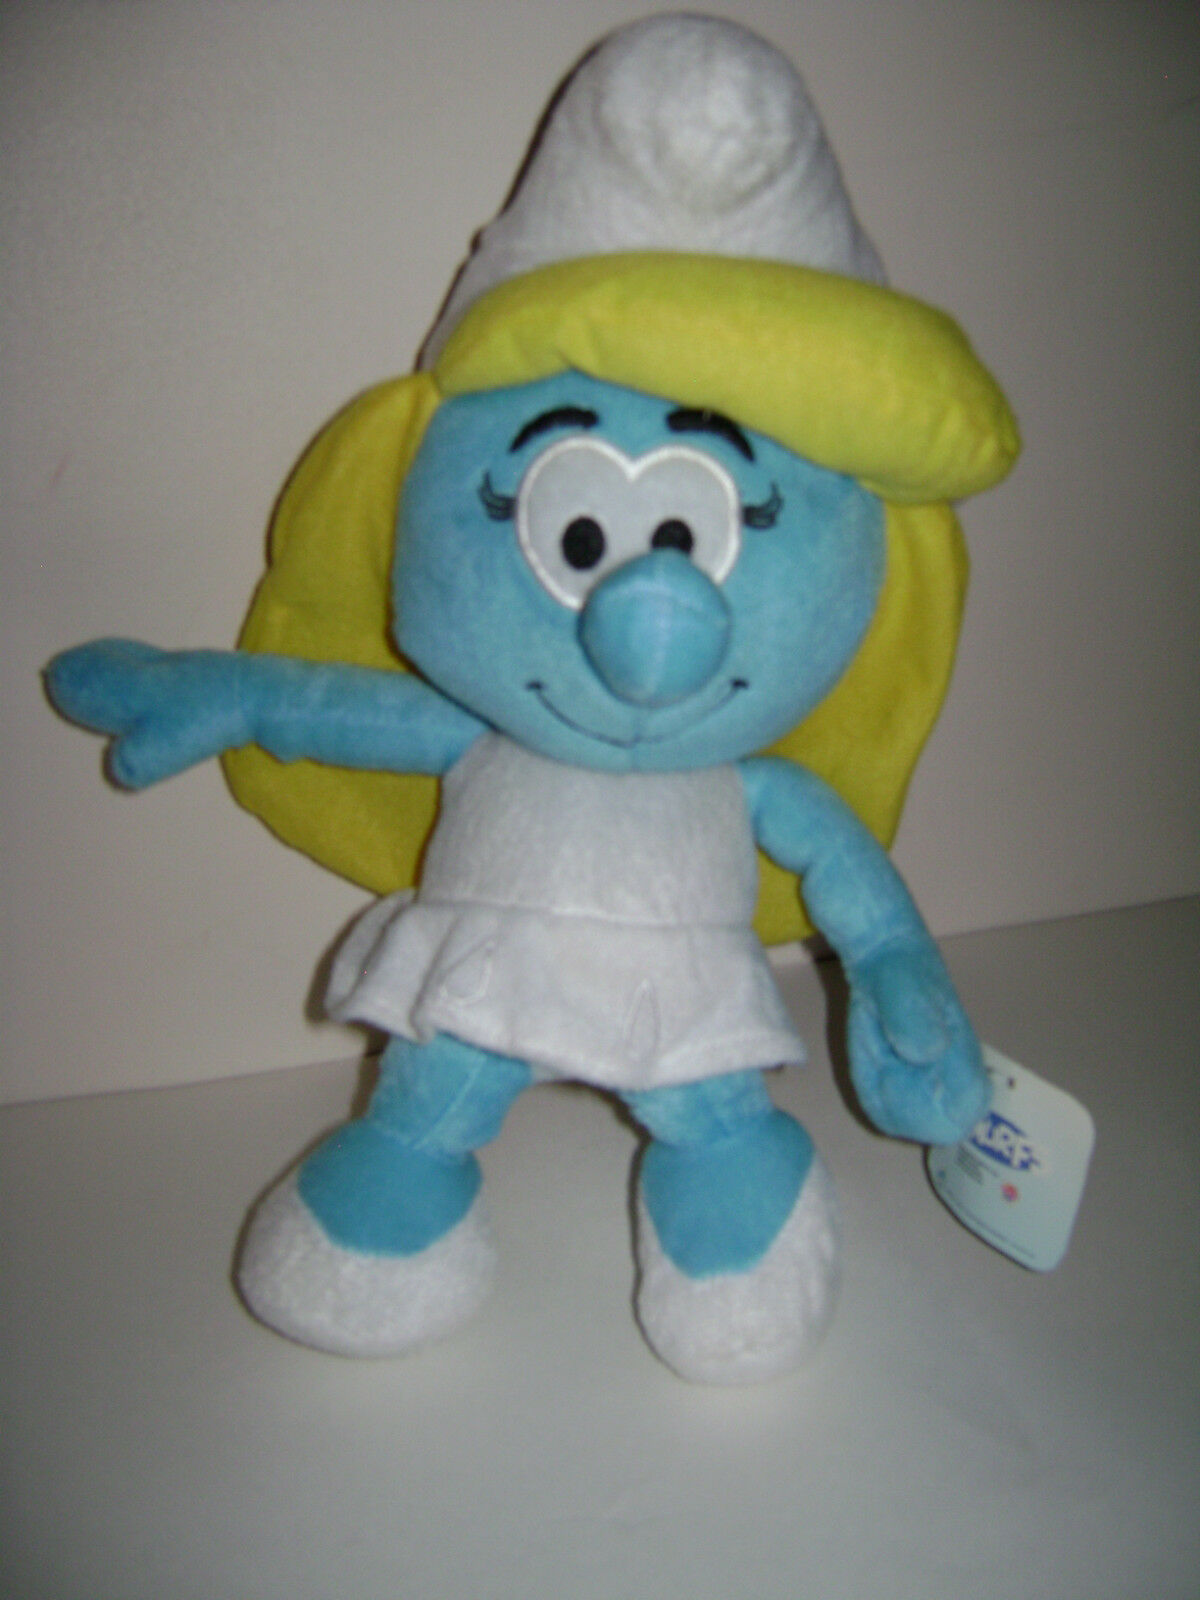 NEW The Smurfs Character Soft Plush Toy Smurfette Pretty Girl Stuffed Doll 13